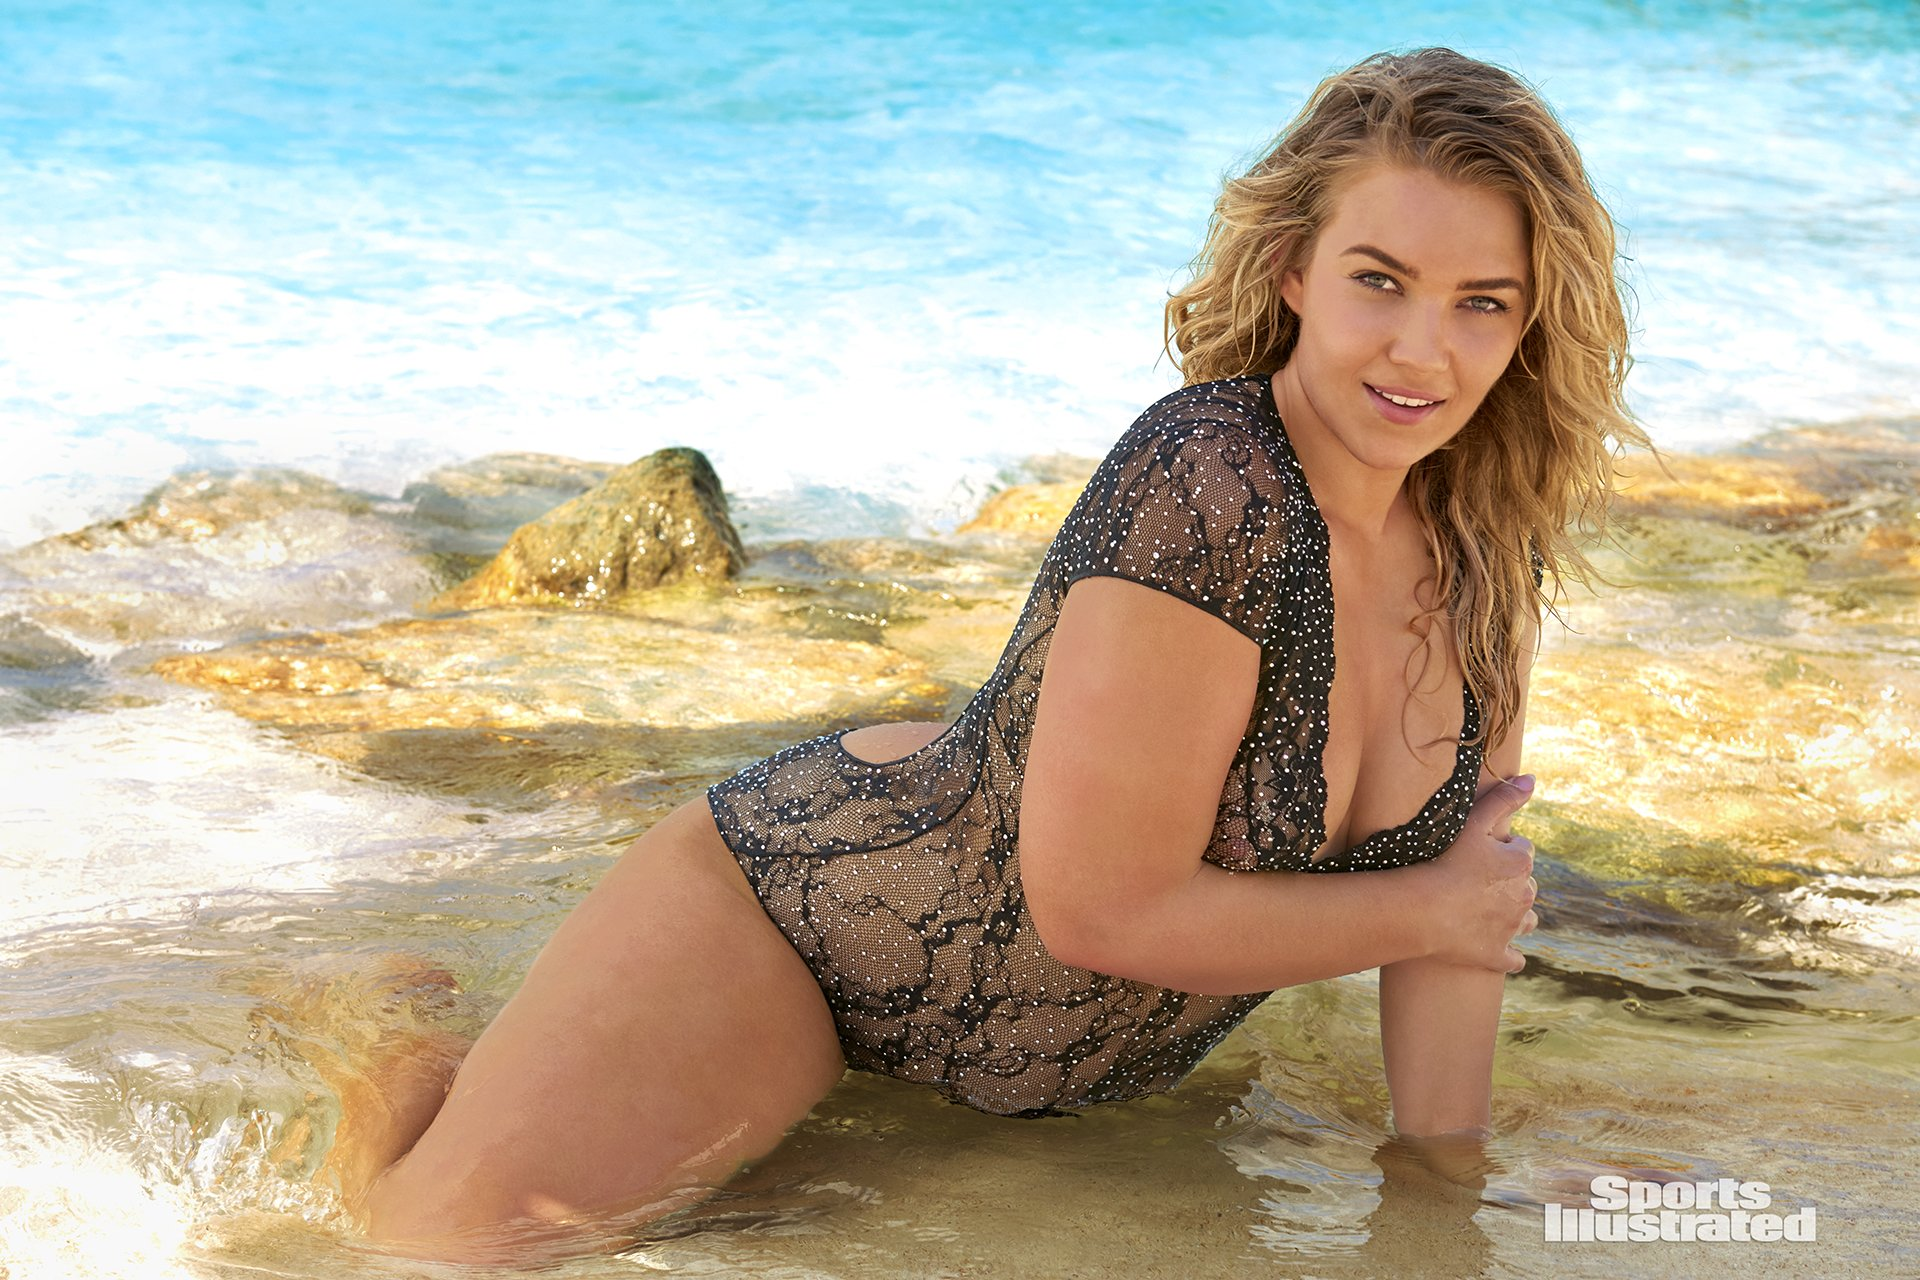 Sports Illustrated Swimsuit Issue 2018011.jpg